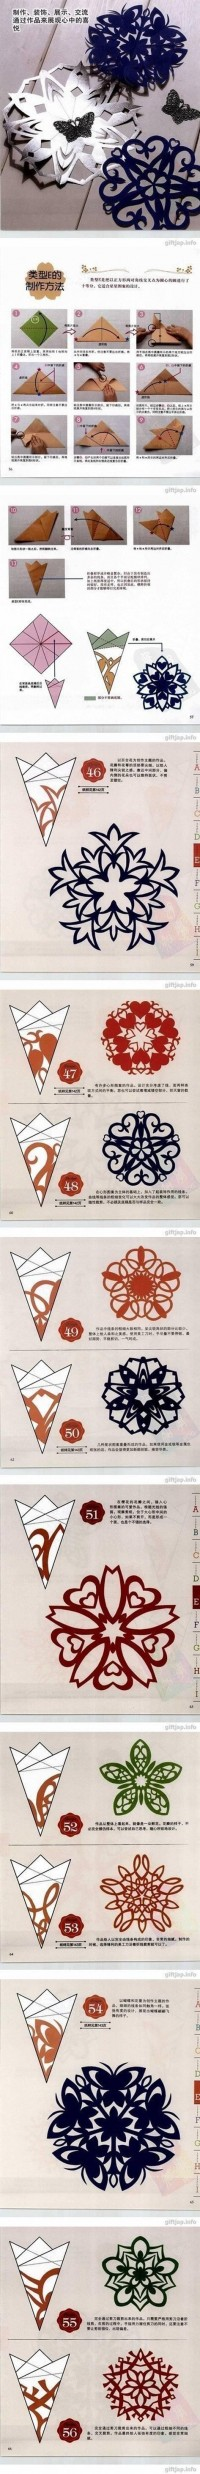 DIY Chinese Paper Cutting DIY Projects | UsefulDIY.com